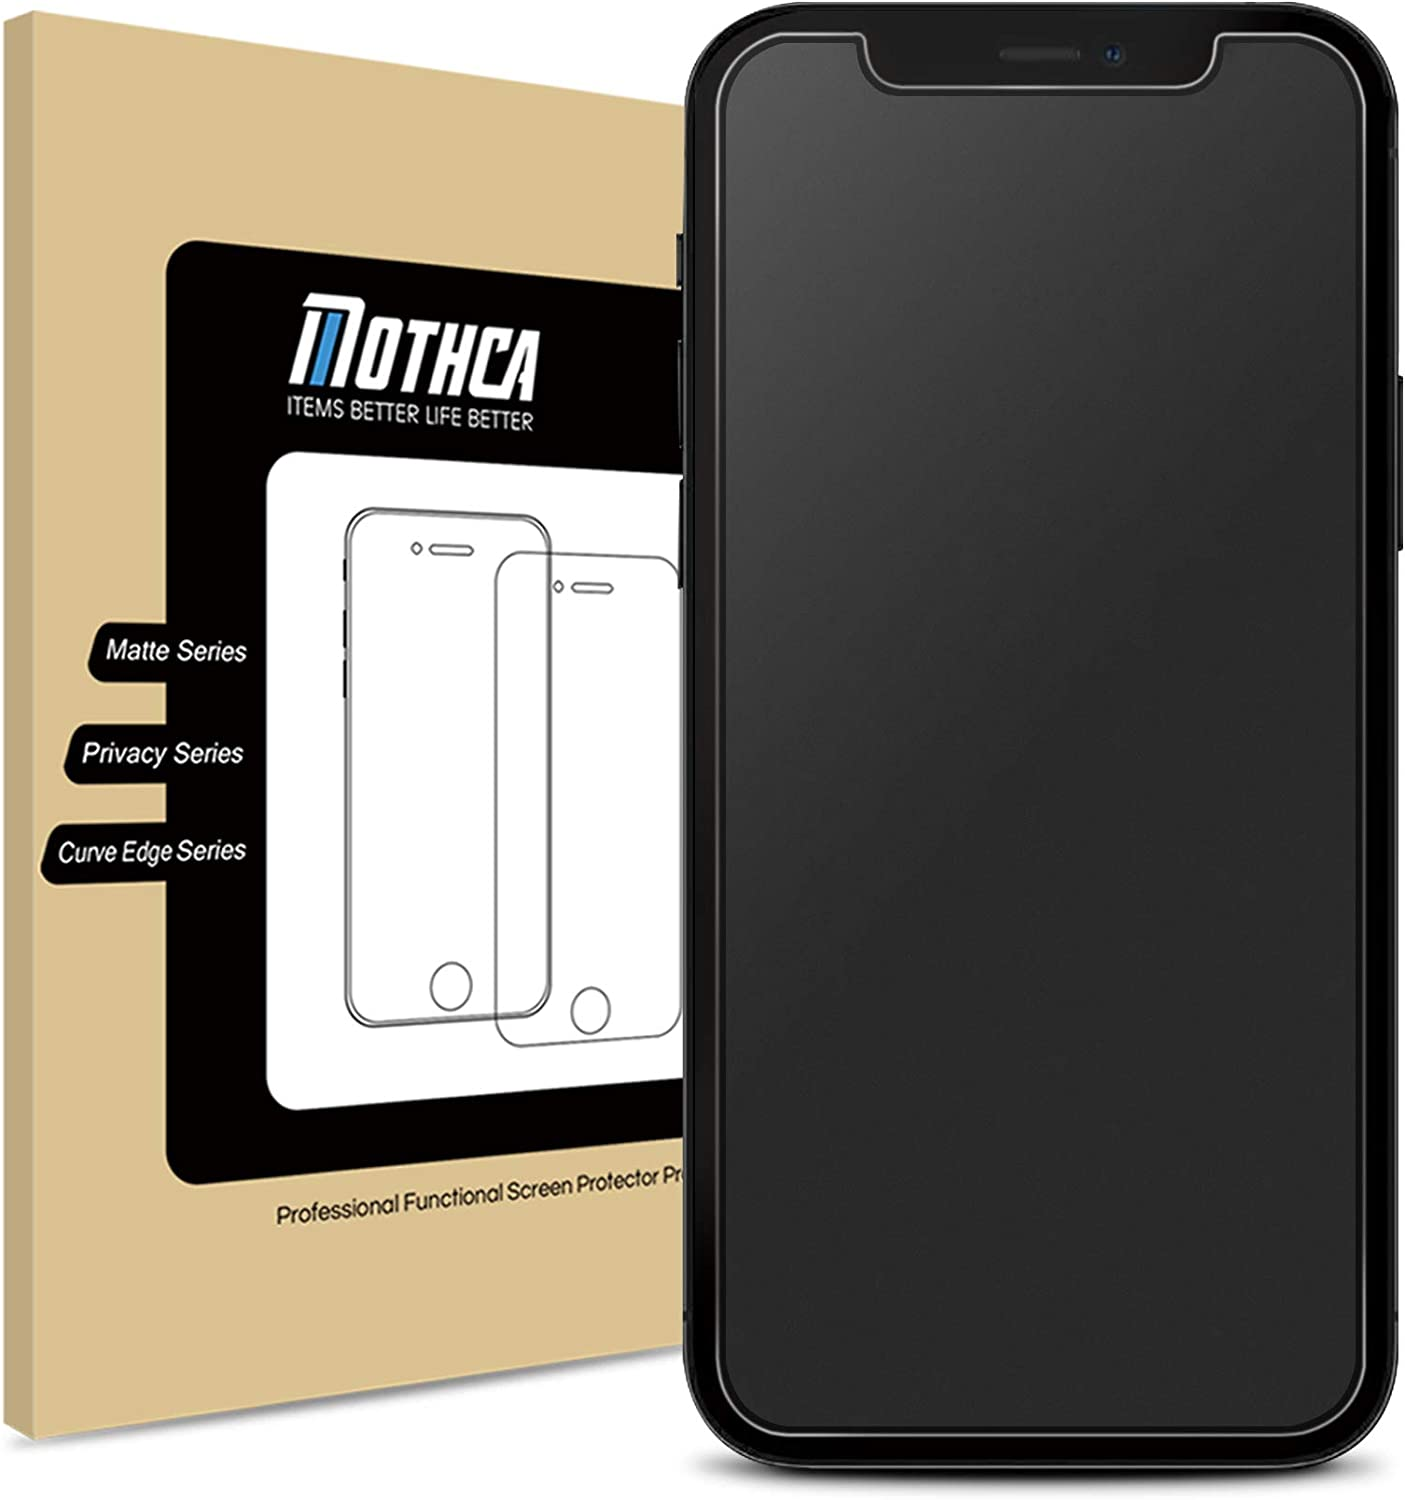 Mothca Matte Screen Protector for iPhone 12 Pro Max Anti-Glare & Anti-Fingerprint Tempered Glass Clear Film Case Friendly Easy Install Bubble Free for iPhone 12 Pro Max 6.7-inch (2020)-Smooth as Silk